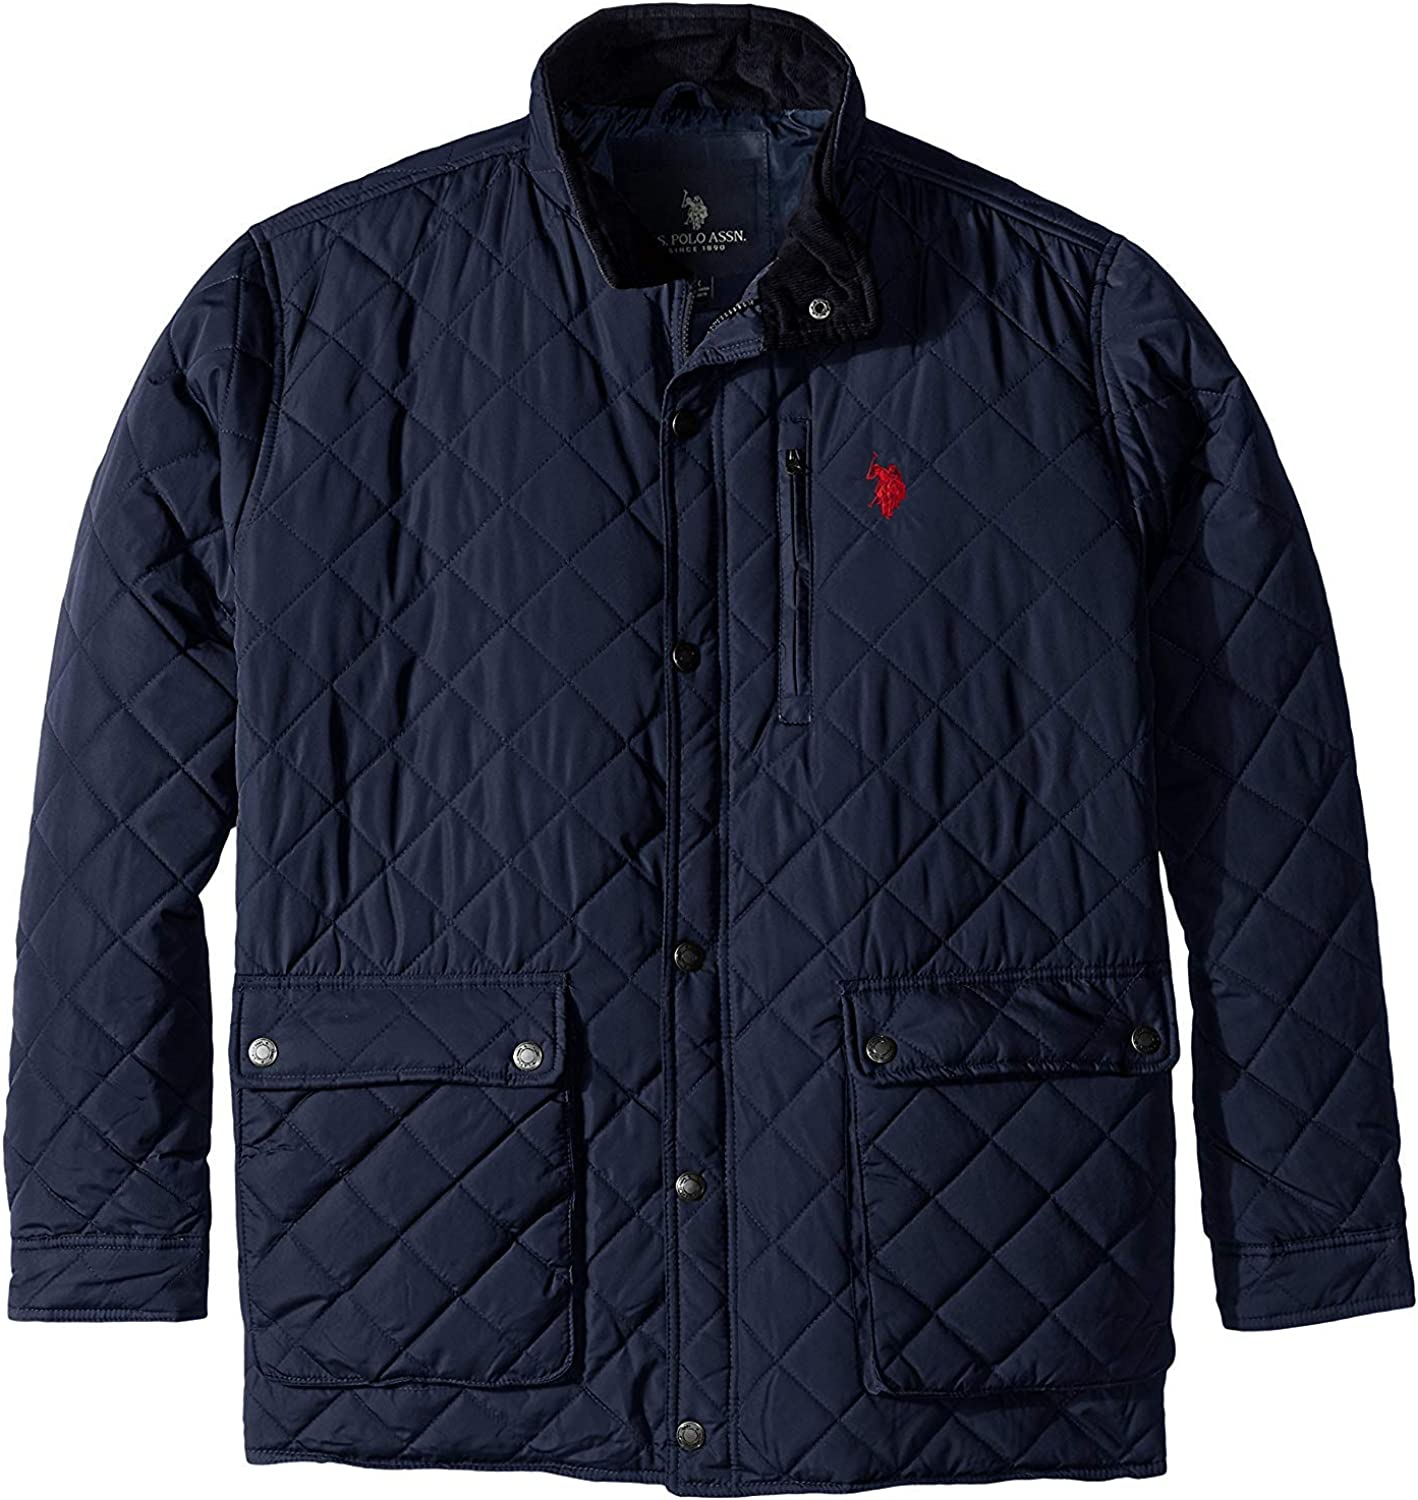 U.S. Polo Assn. mens Diamond-quilted Jacket